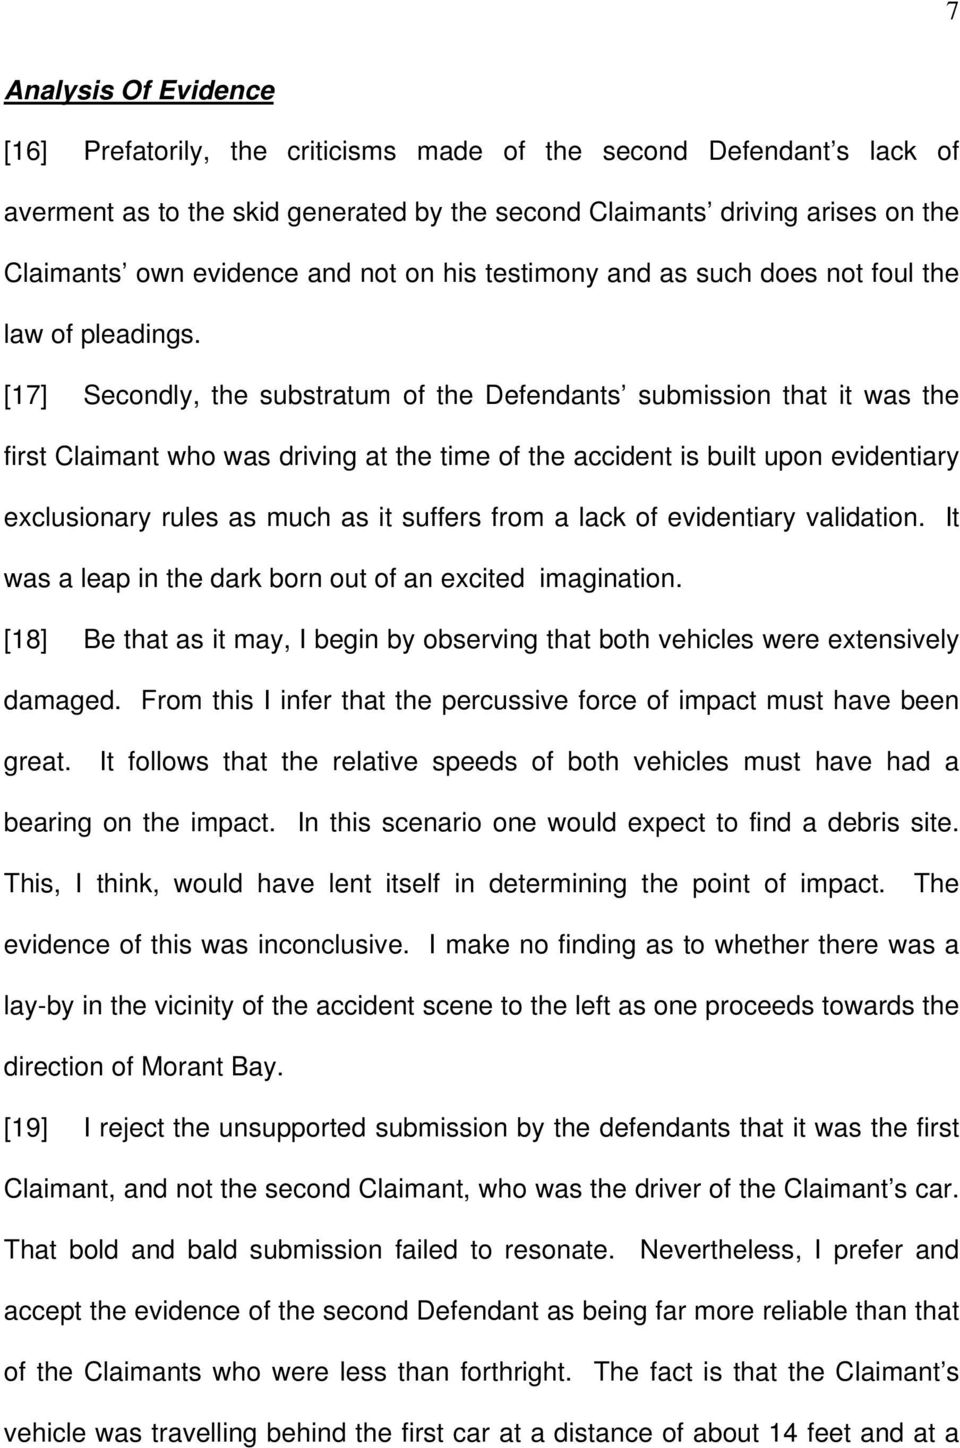 [17] Secondly, the substratum of the Defendants submission that it was the first Claimant who was driving at the time of the accident is built upon evidentiary exclusionary rules as much as it